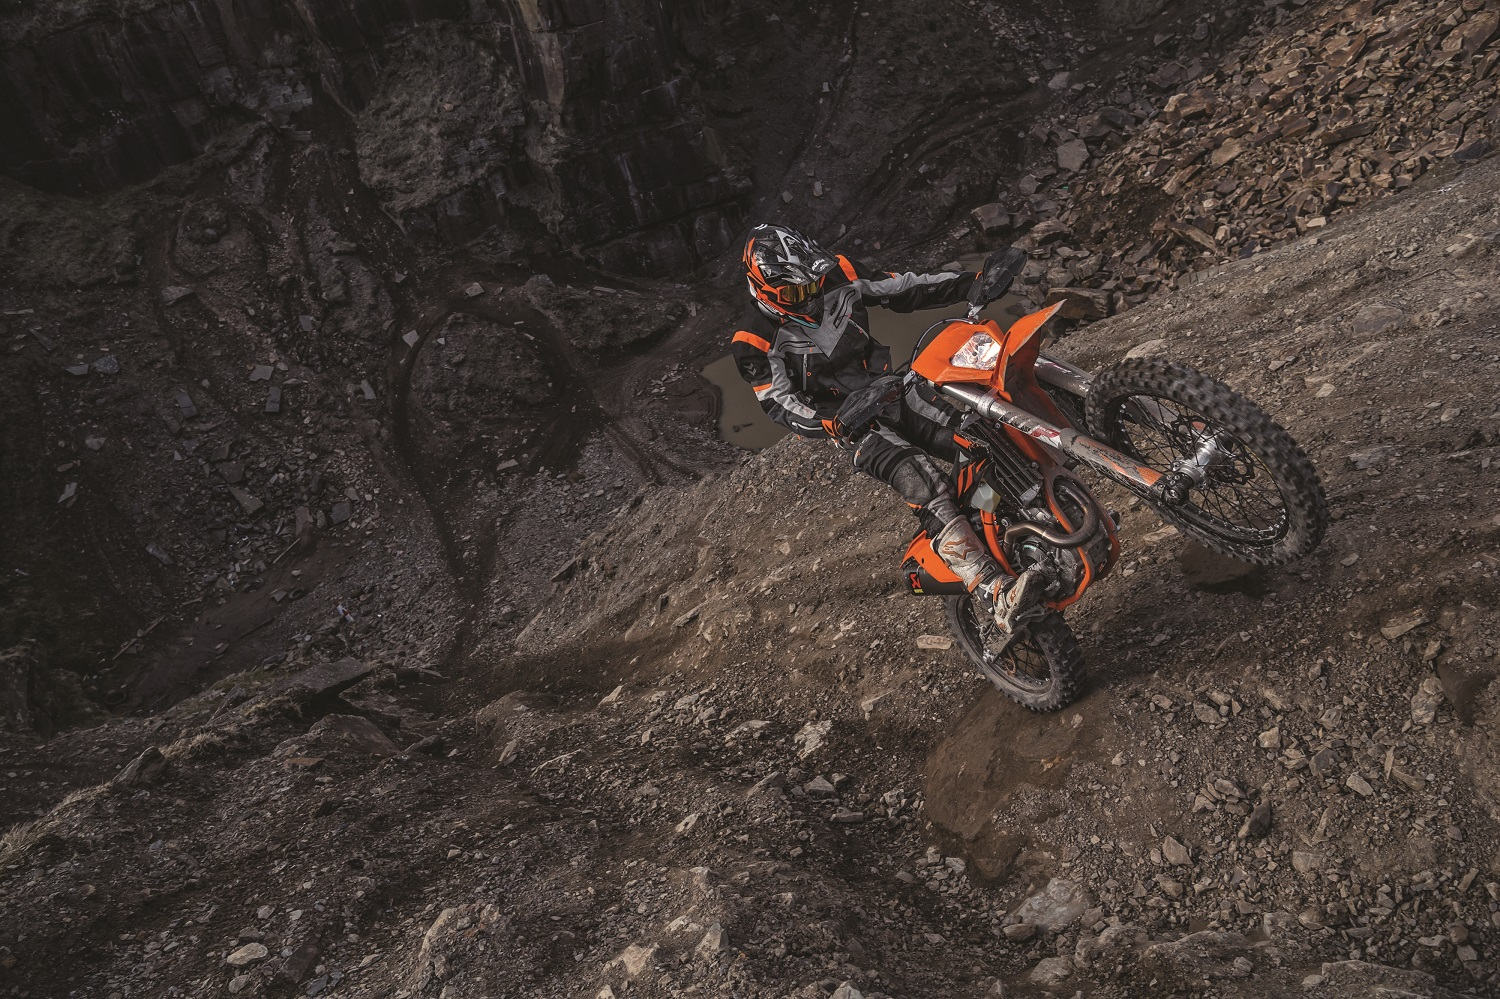 01_Action_KTM 500 EXC-F MY2019